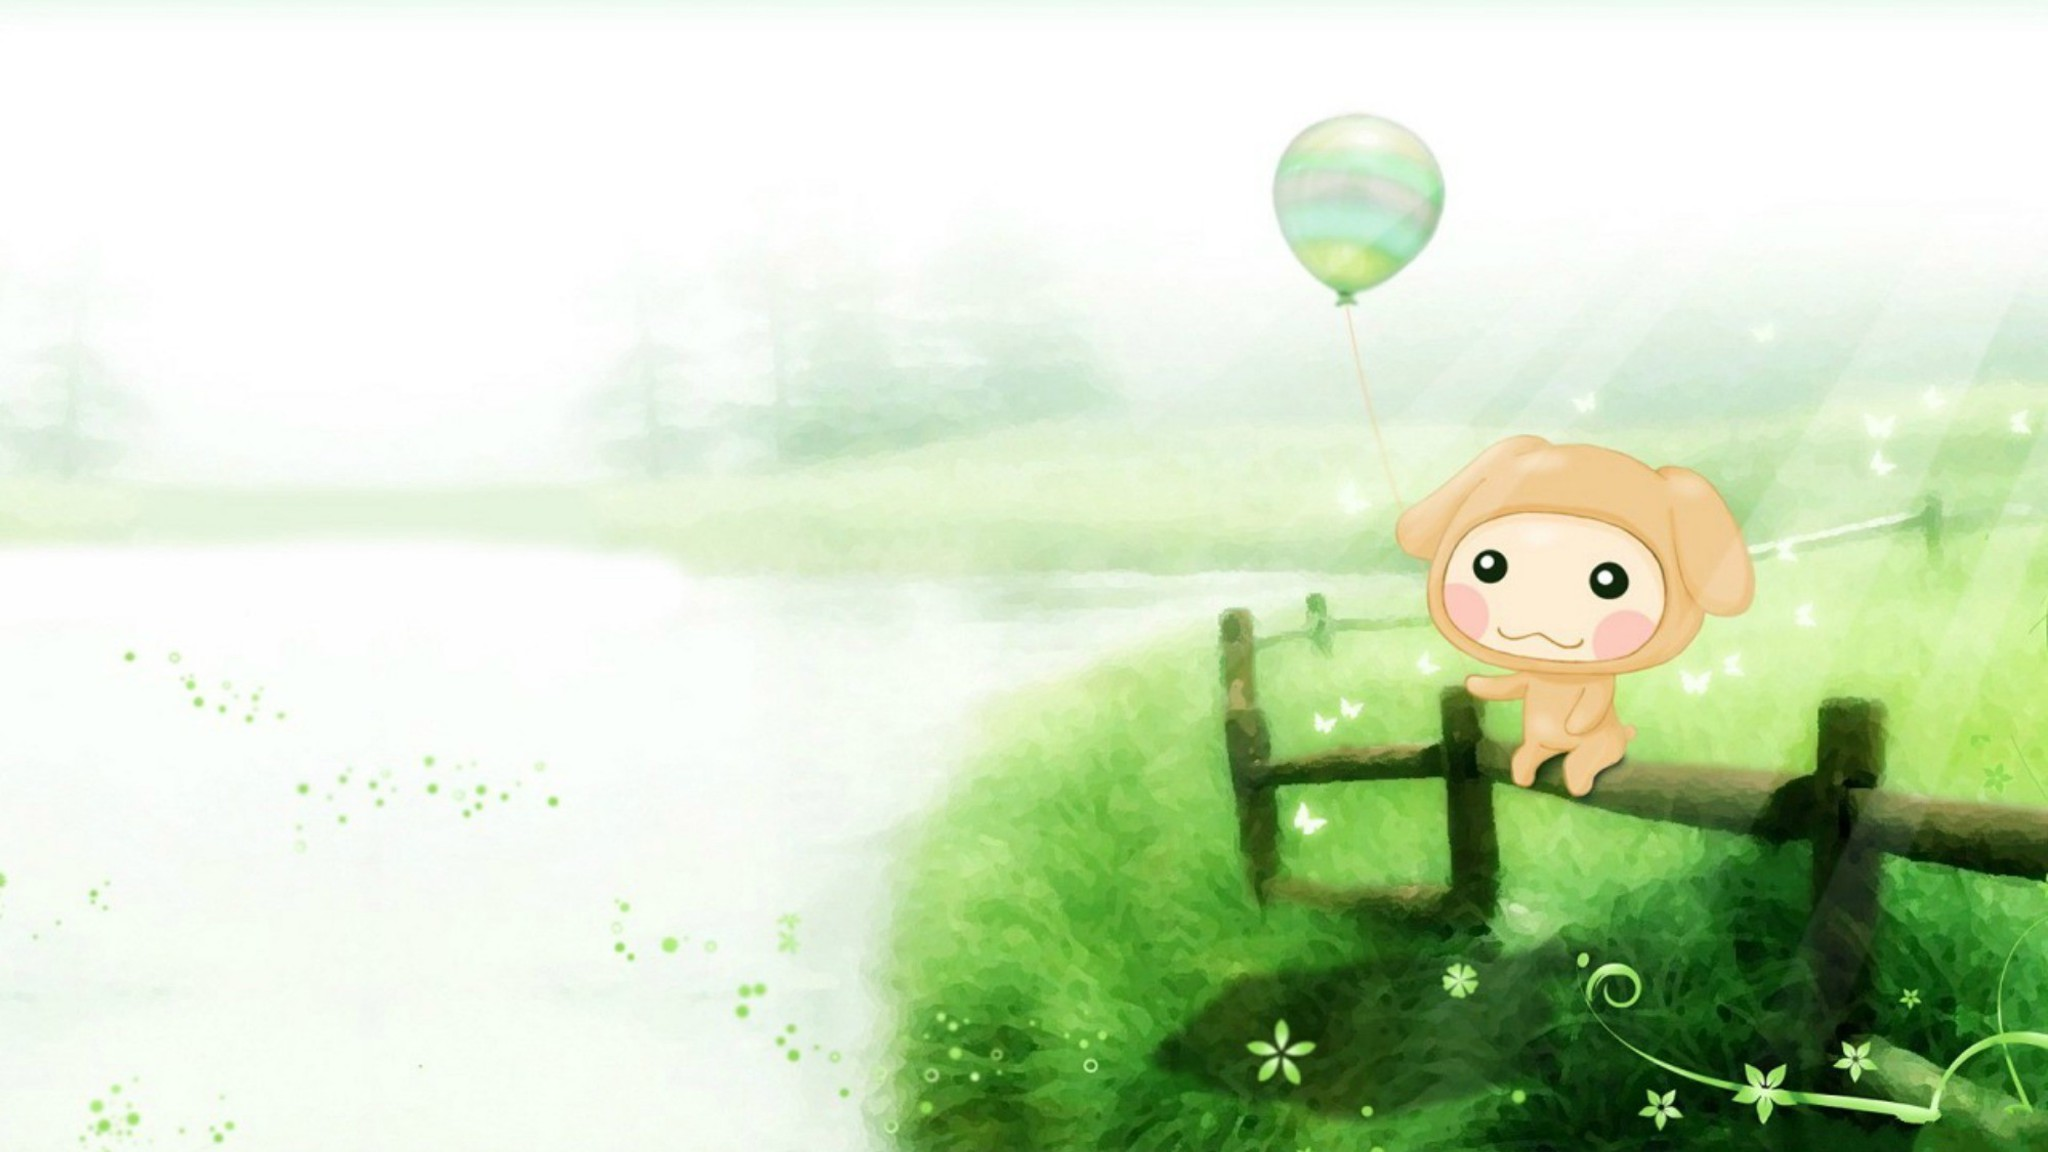 Cute lil cartoon wallpaper 5566 pc en - Cute cartoon hd images ...